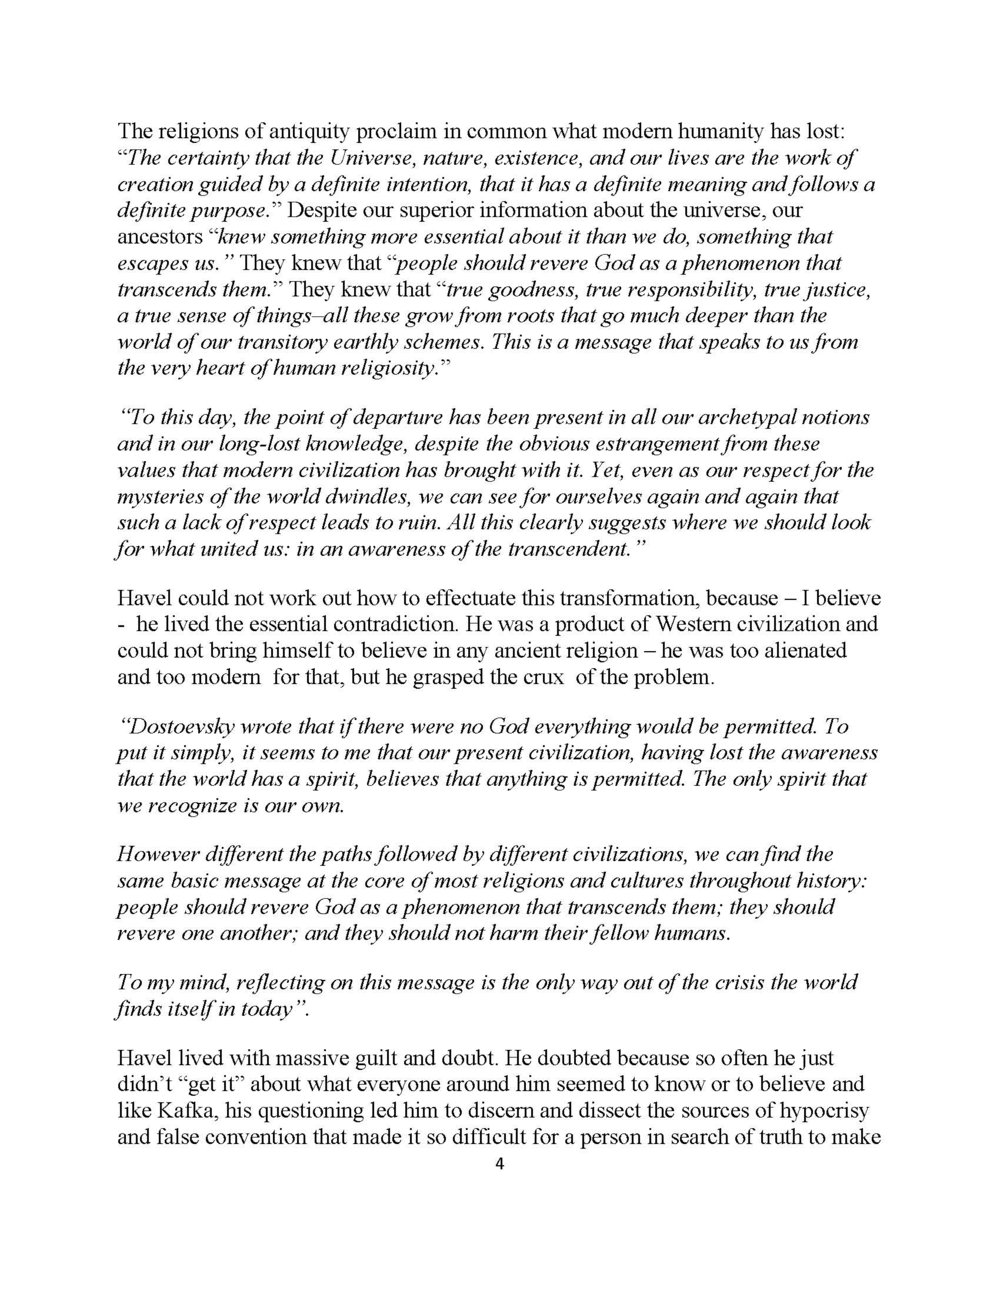 Vaclav Havel -A Reflection_Page_4.jpg